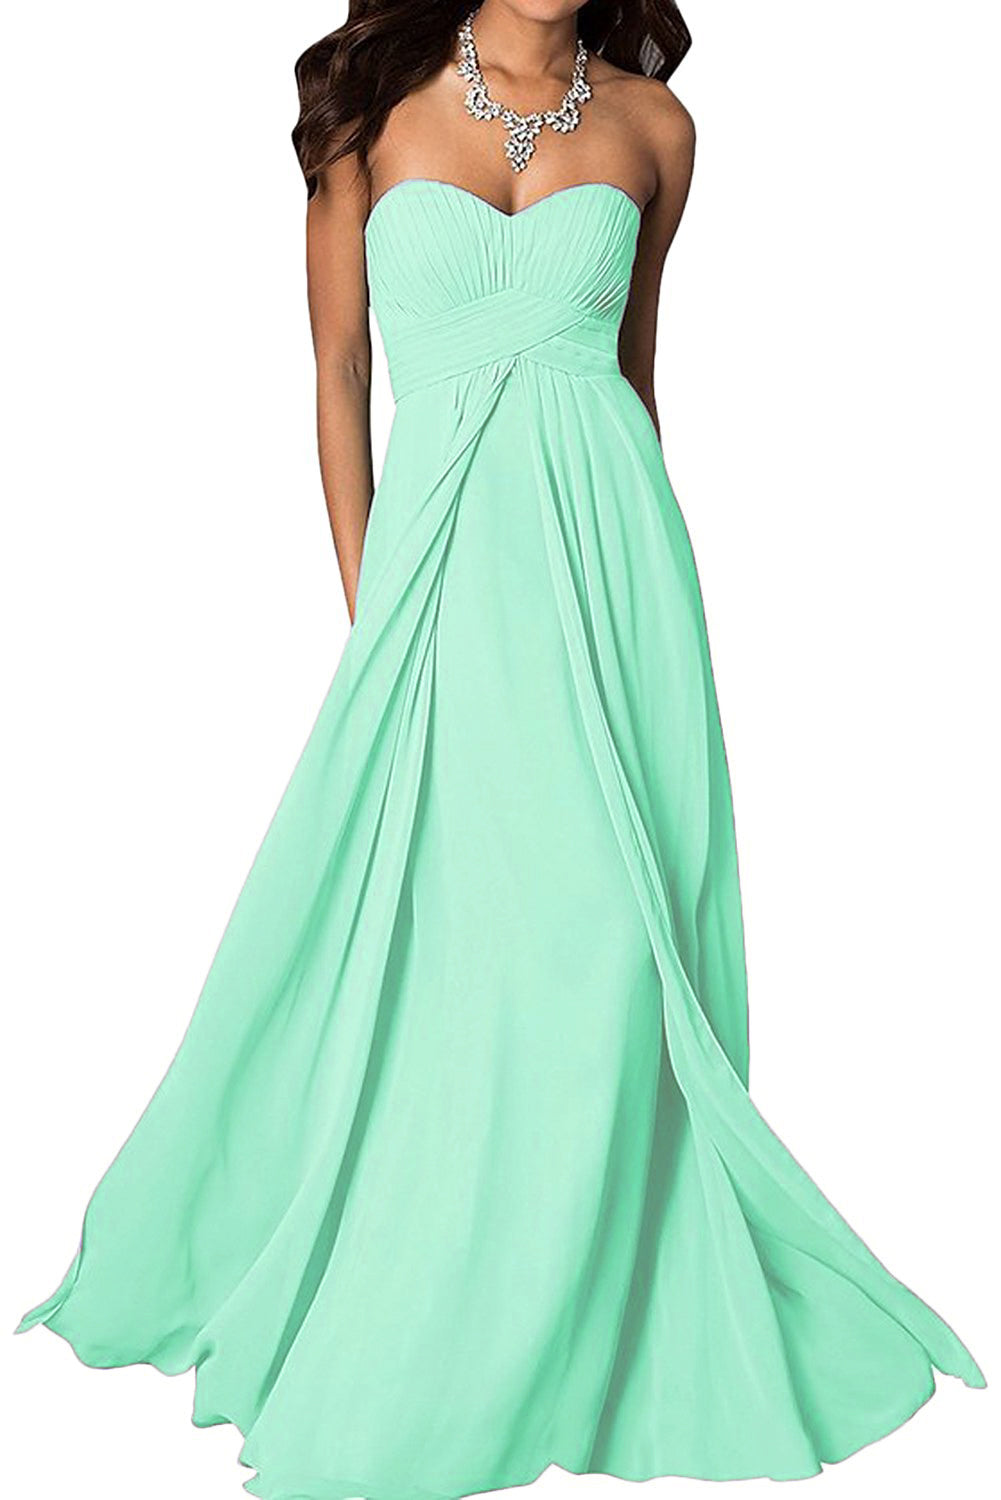 madison pale pastel light mint green chiffon strapless long maxi bridesmaid wedding bride bridal prom ballgown evening formal occasion dress uk